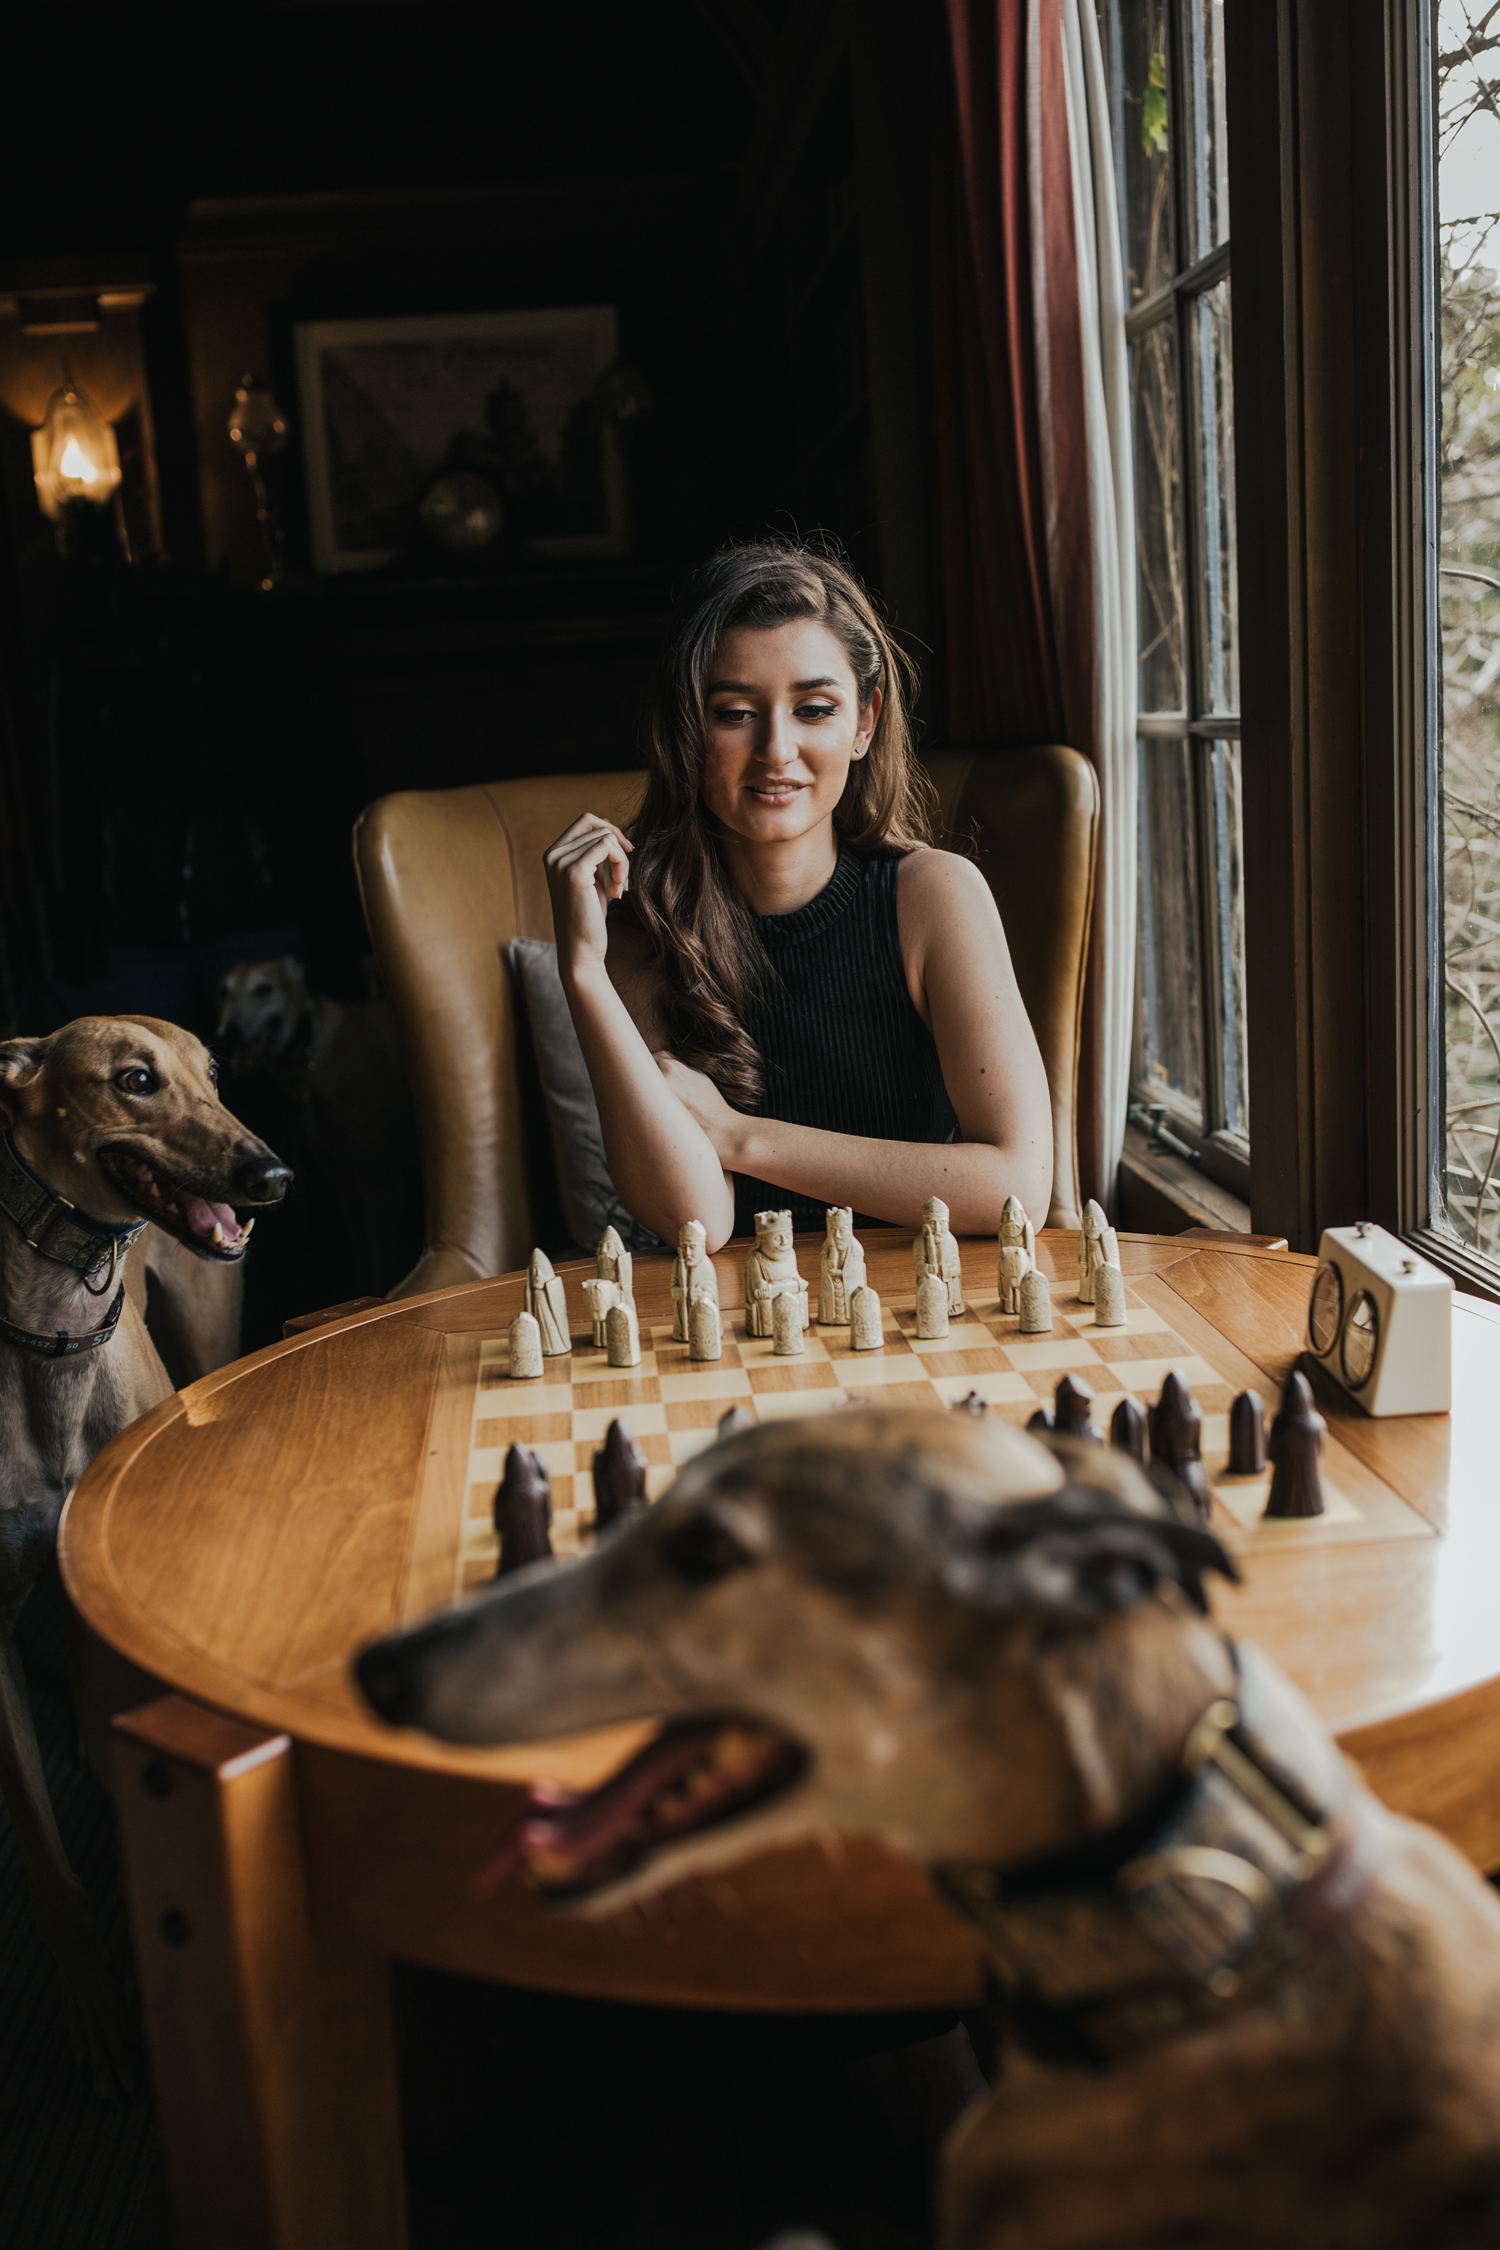 hillary jeanne photography - teryn grey, chess, greyhound dogs